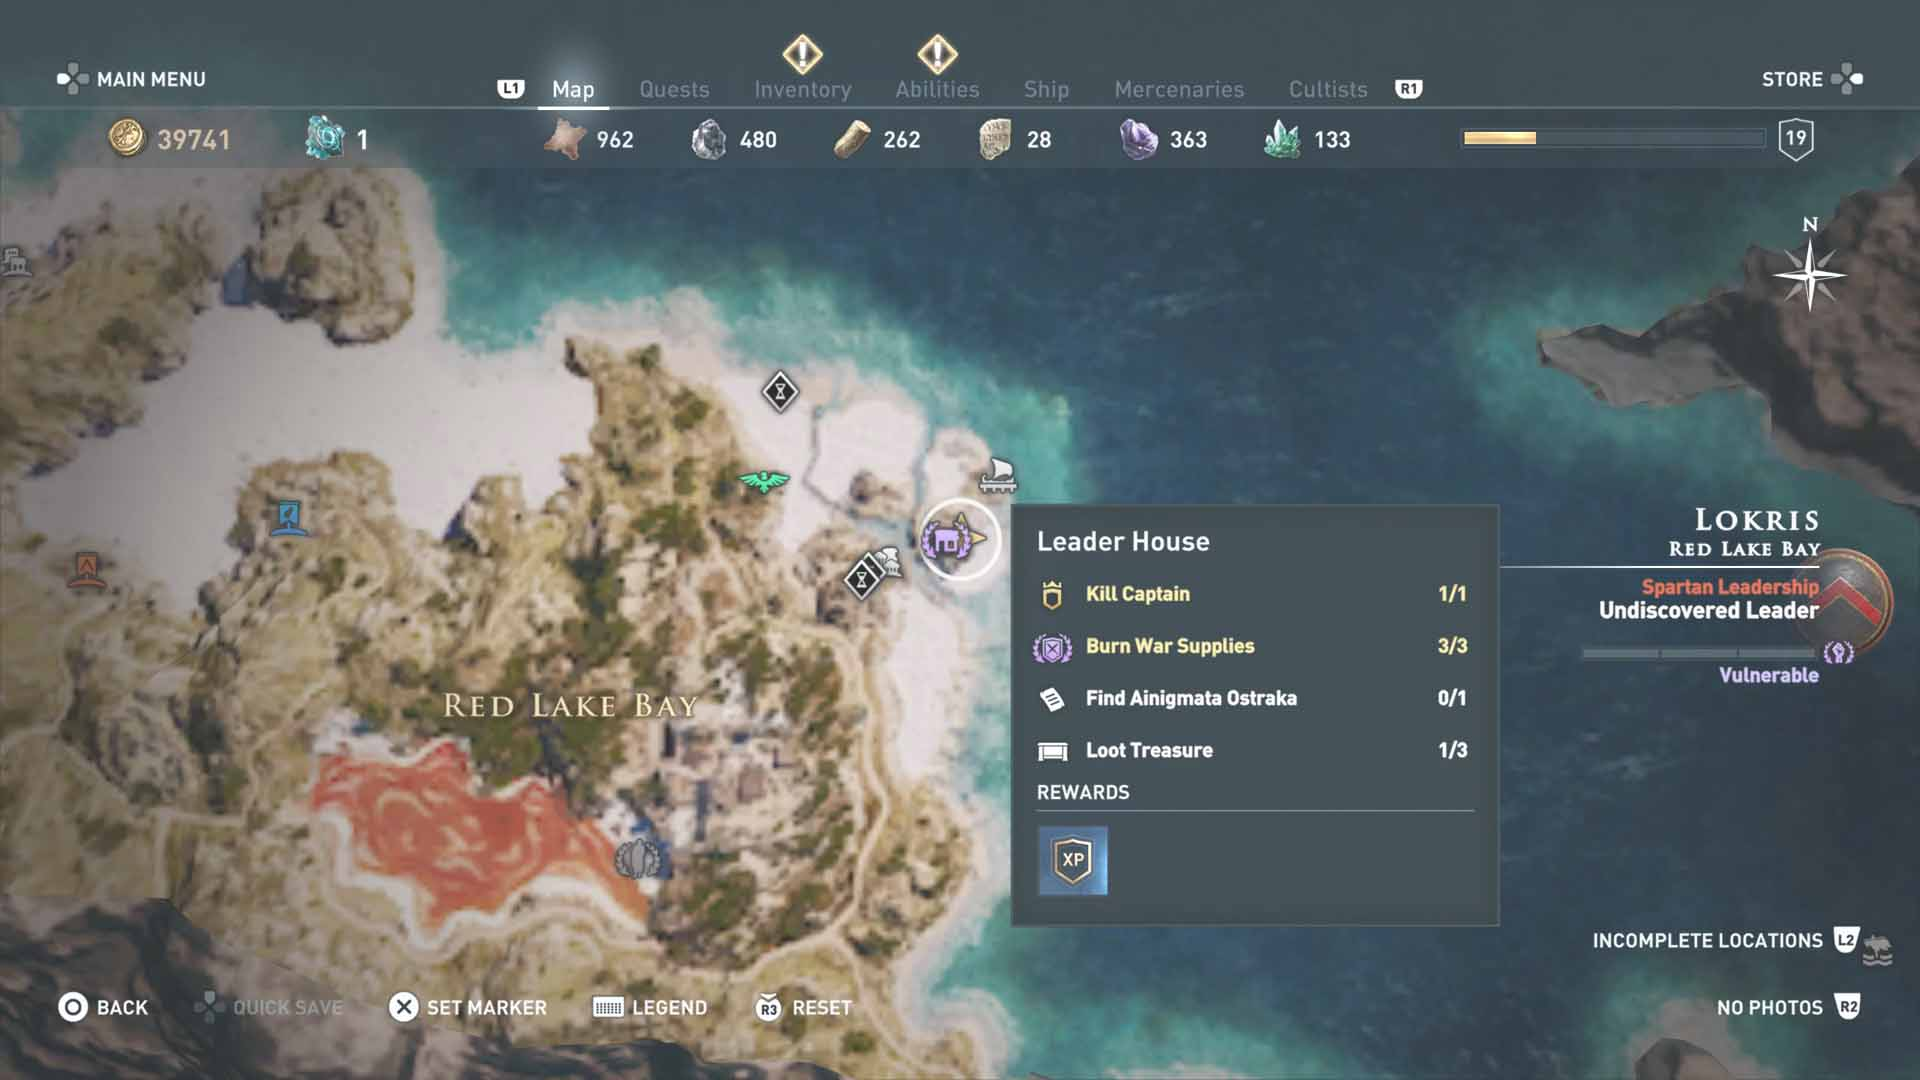 All Loot Treasure And Ancient Tablet Locations Lokris All Tombs Ainigmata And Loot Treasure Locations Assassin S Creed Odyssey